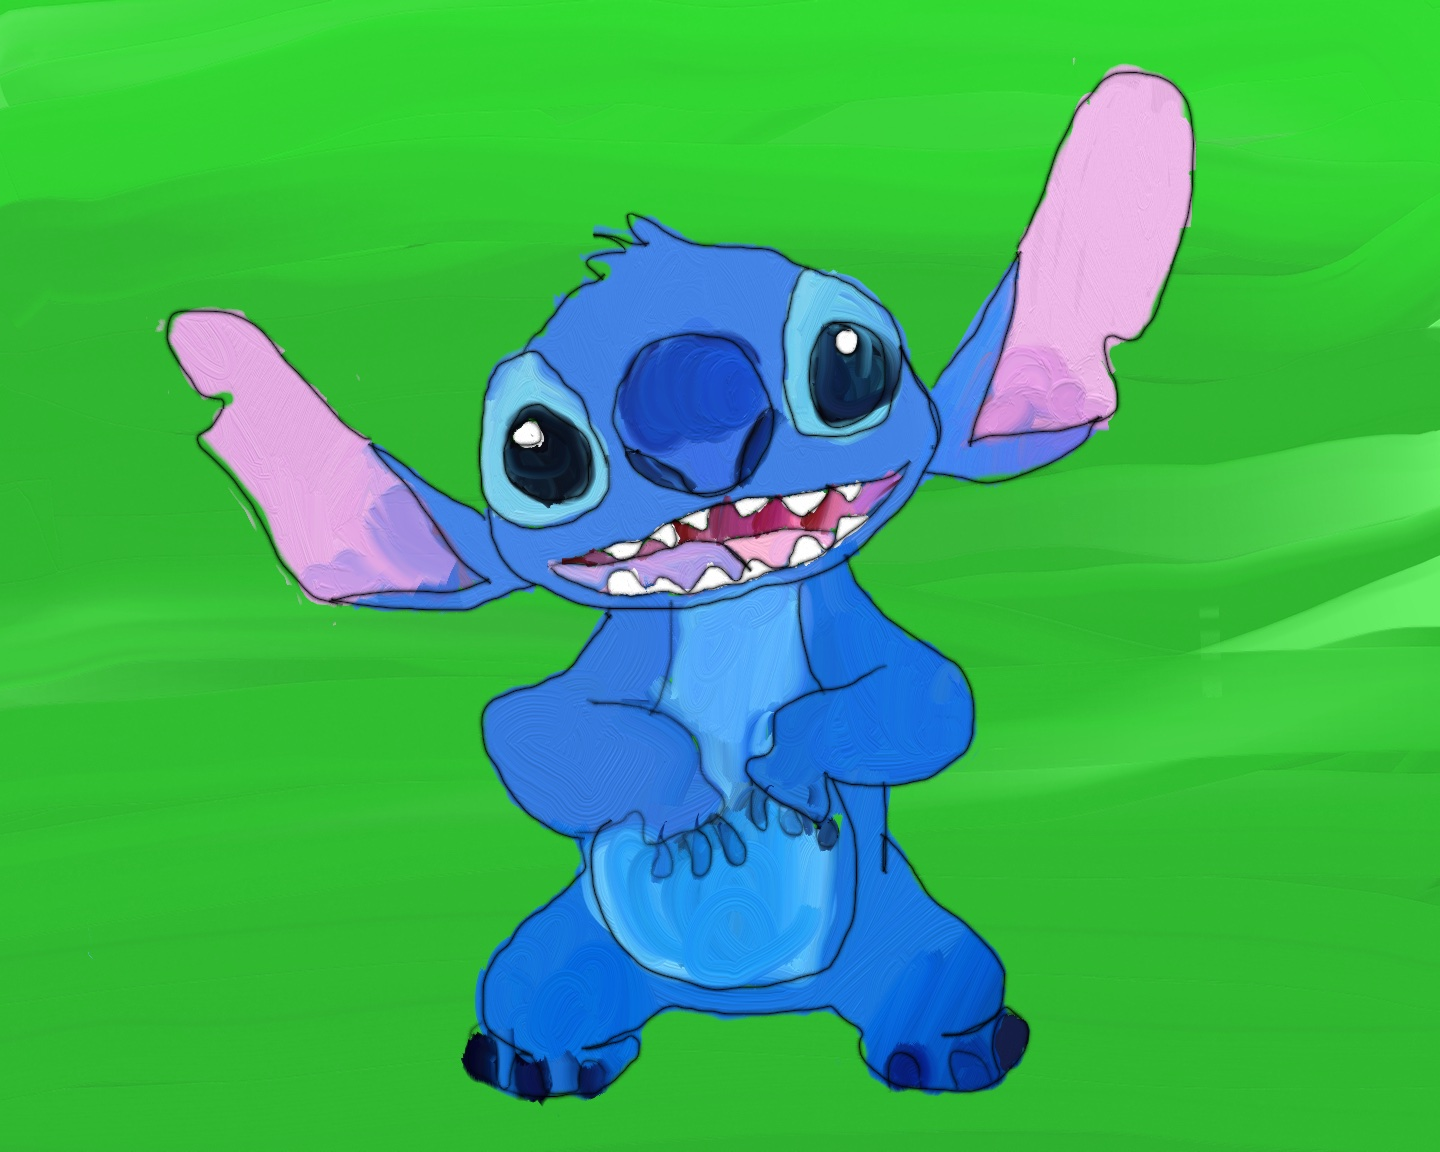 Image of a painting of Stitch.